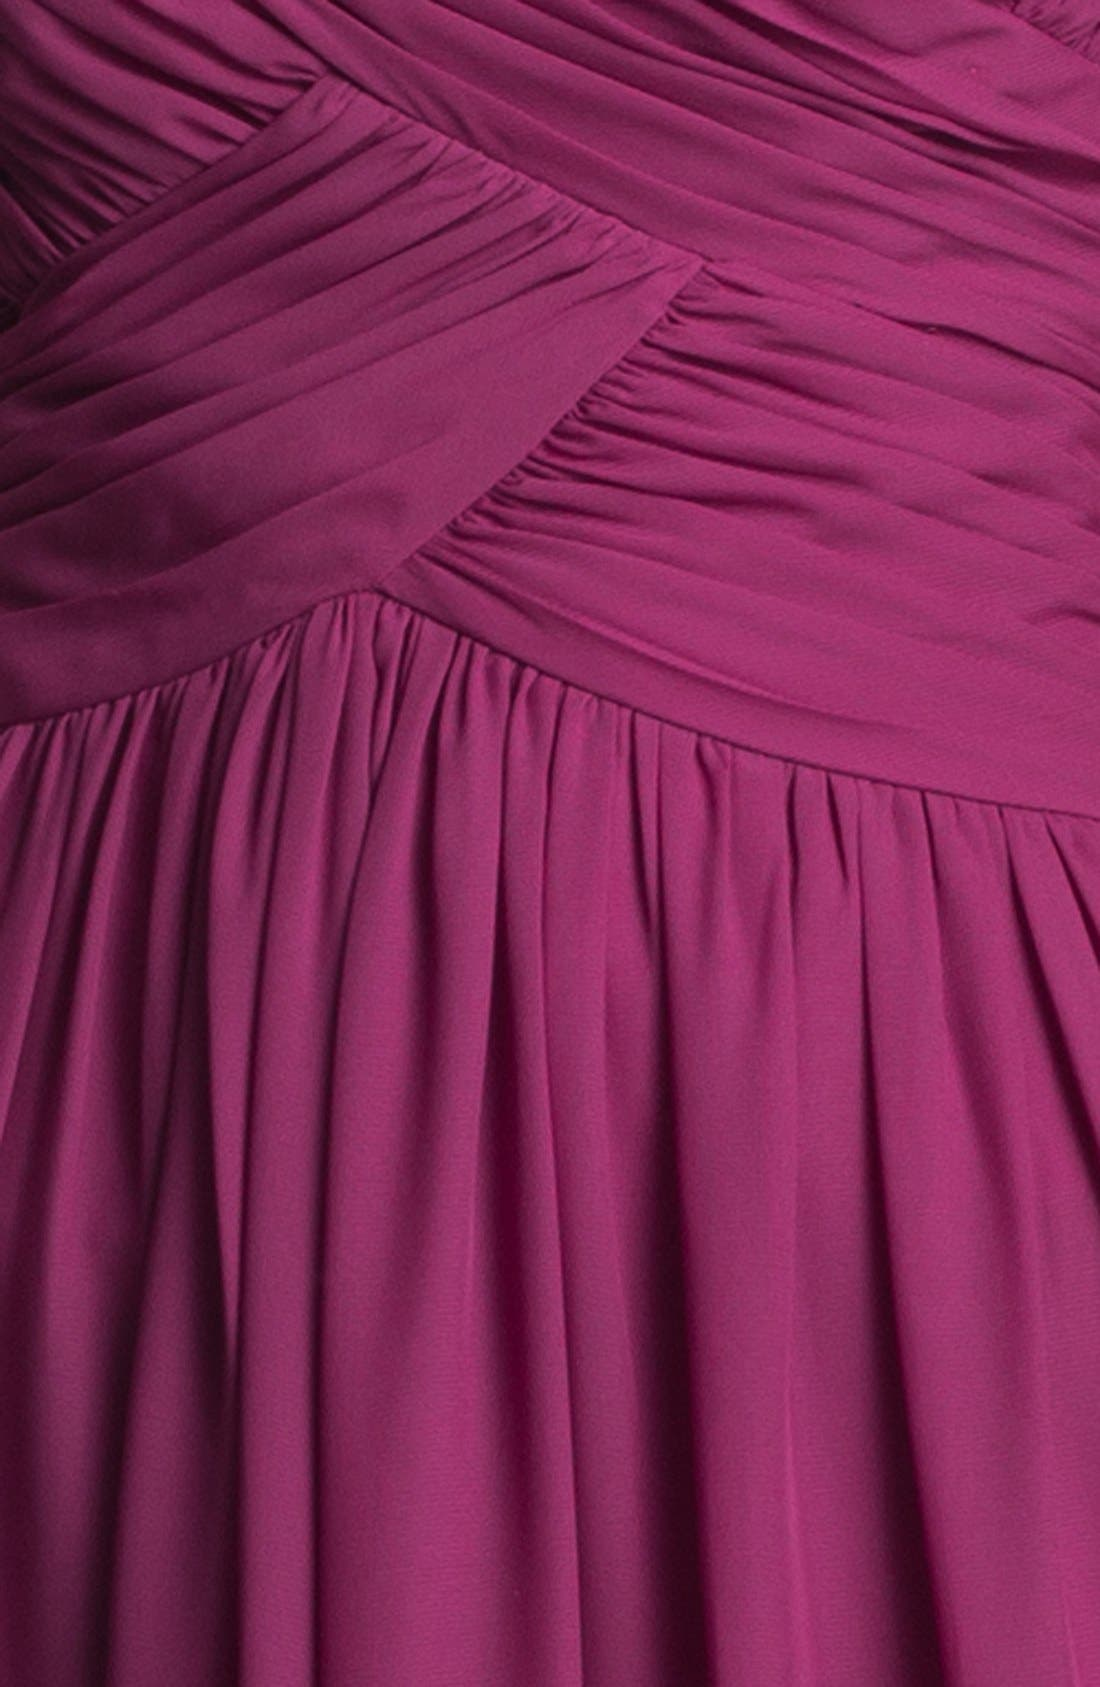 Strapless Ruched Chiffon Gown,                             Alternate thumbnail 24, color,